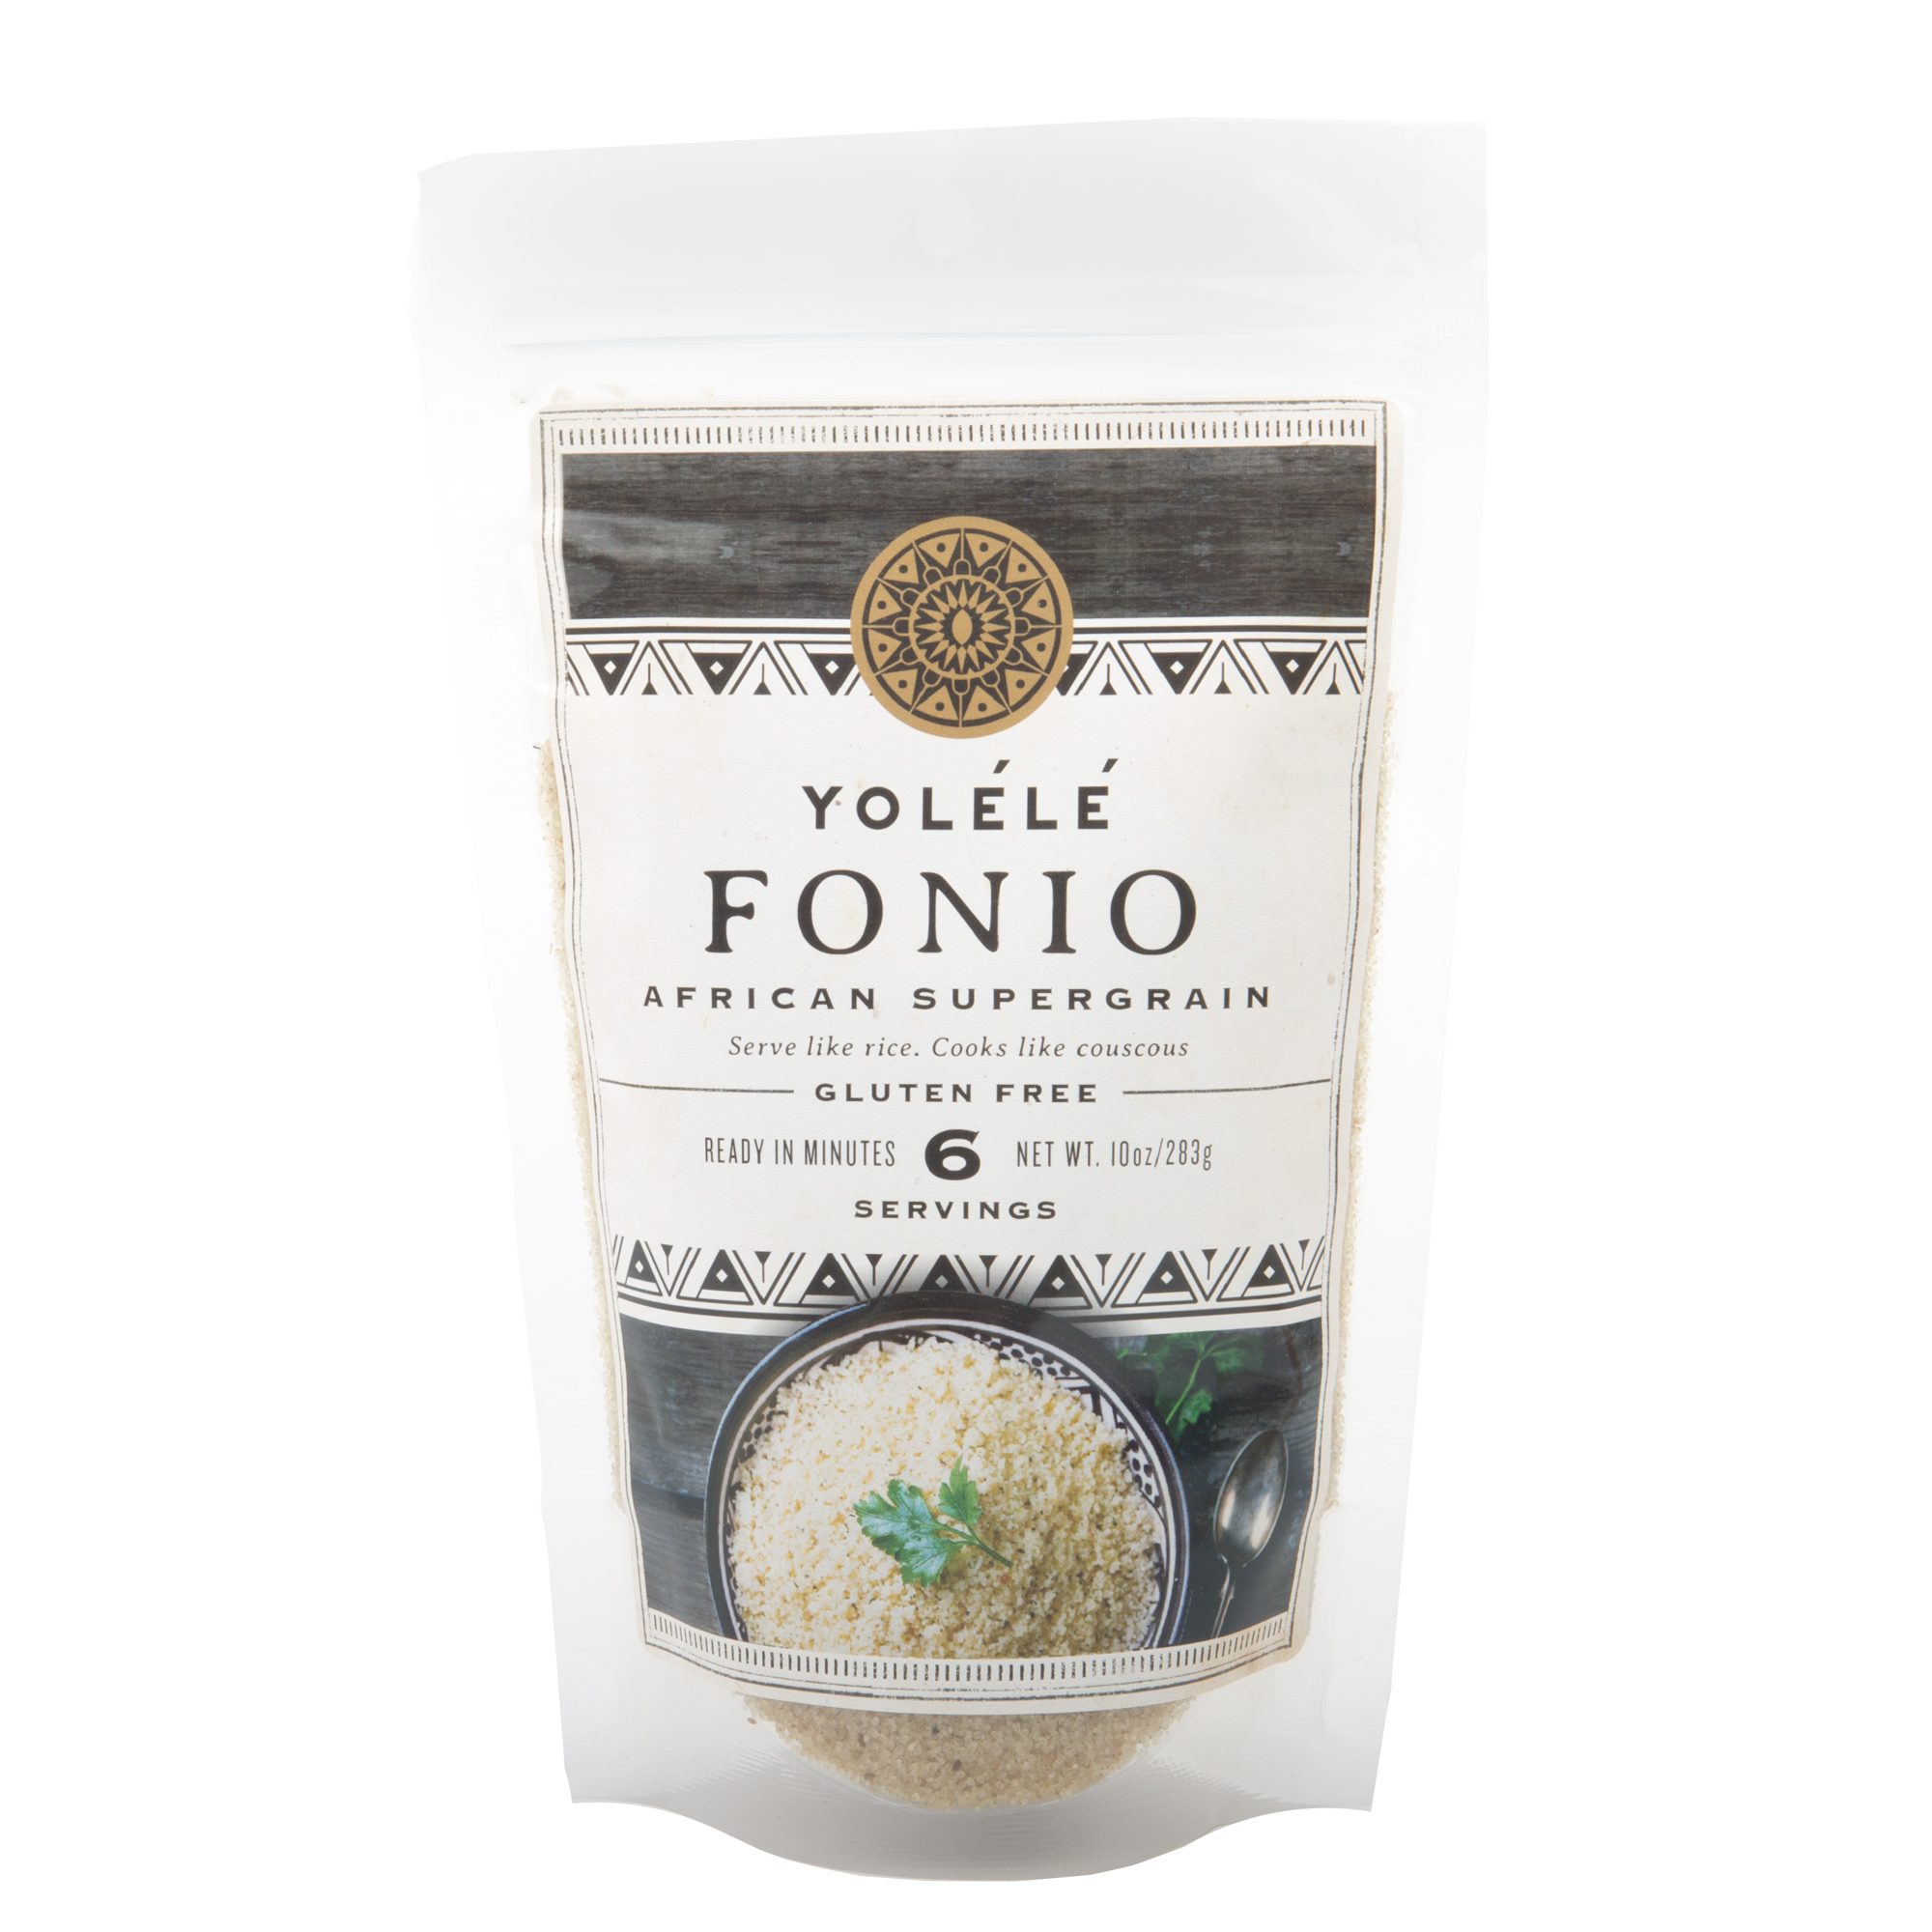 YoléléFonio - Founded by Pierre Thiam,Yolélé Foods is introducing West Africa's oldest grain, Fonio, to the world - it's gluten-free, has x3 protein, iron, fiber of brown rice and cooks in just 5 minutes!